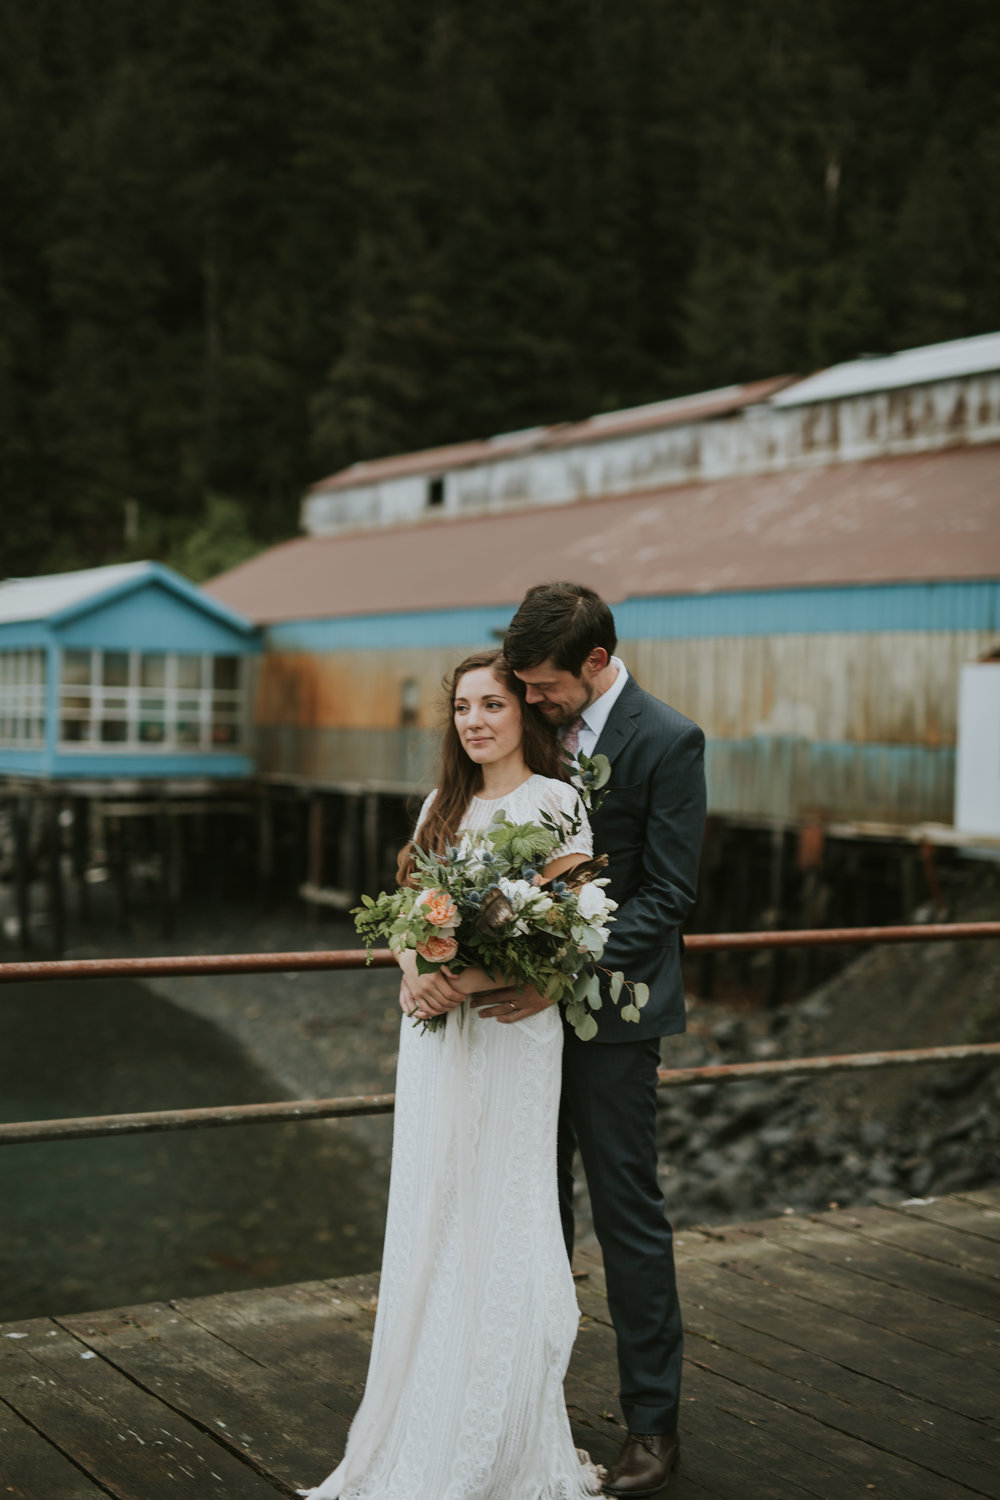 JEN AND DANNY WEDDING - CORDOVA, ALASKA